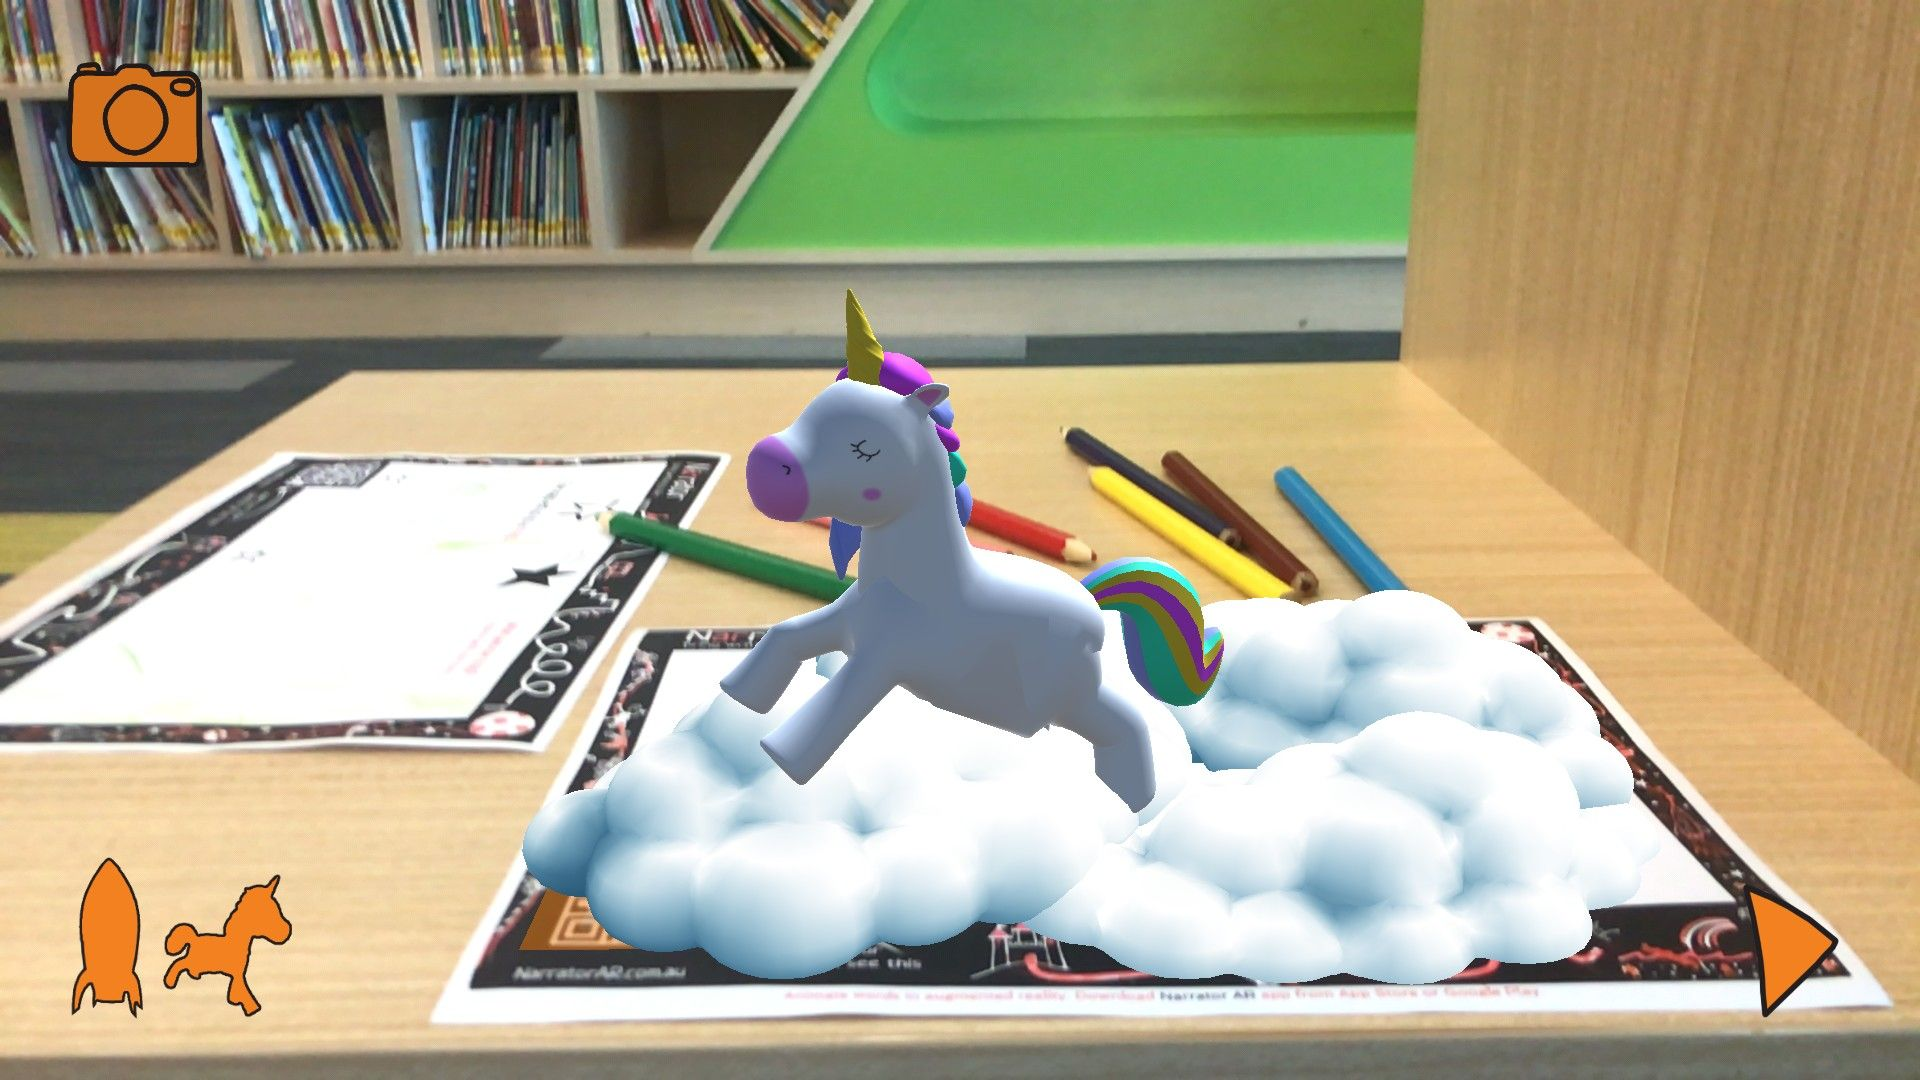 7 Augmented Reality Tools for the Classroom